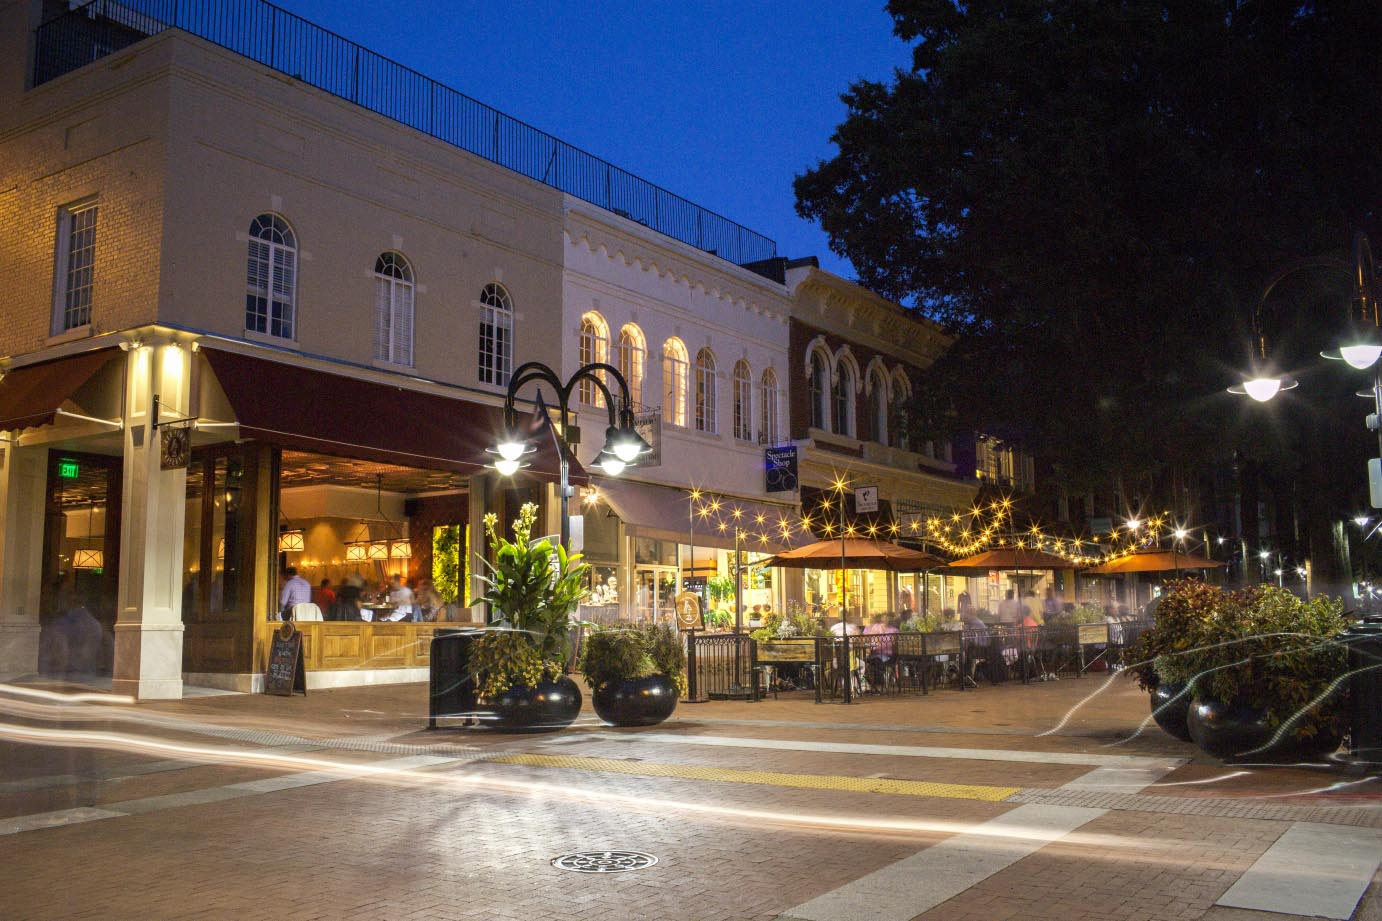 Visit Charlottesville Fashion Square in central Virginia to shop your favorite stores, enjoy a meal at one of our many restaurants or enjoy entertainment.